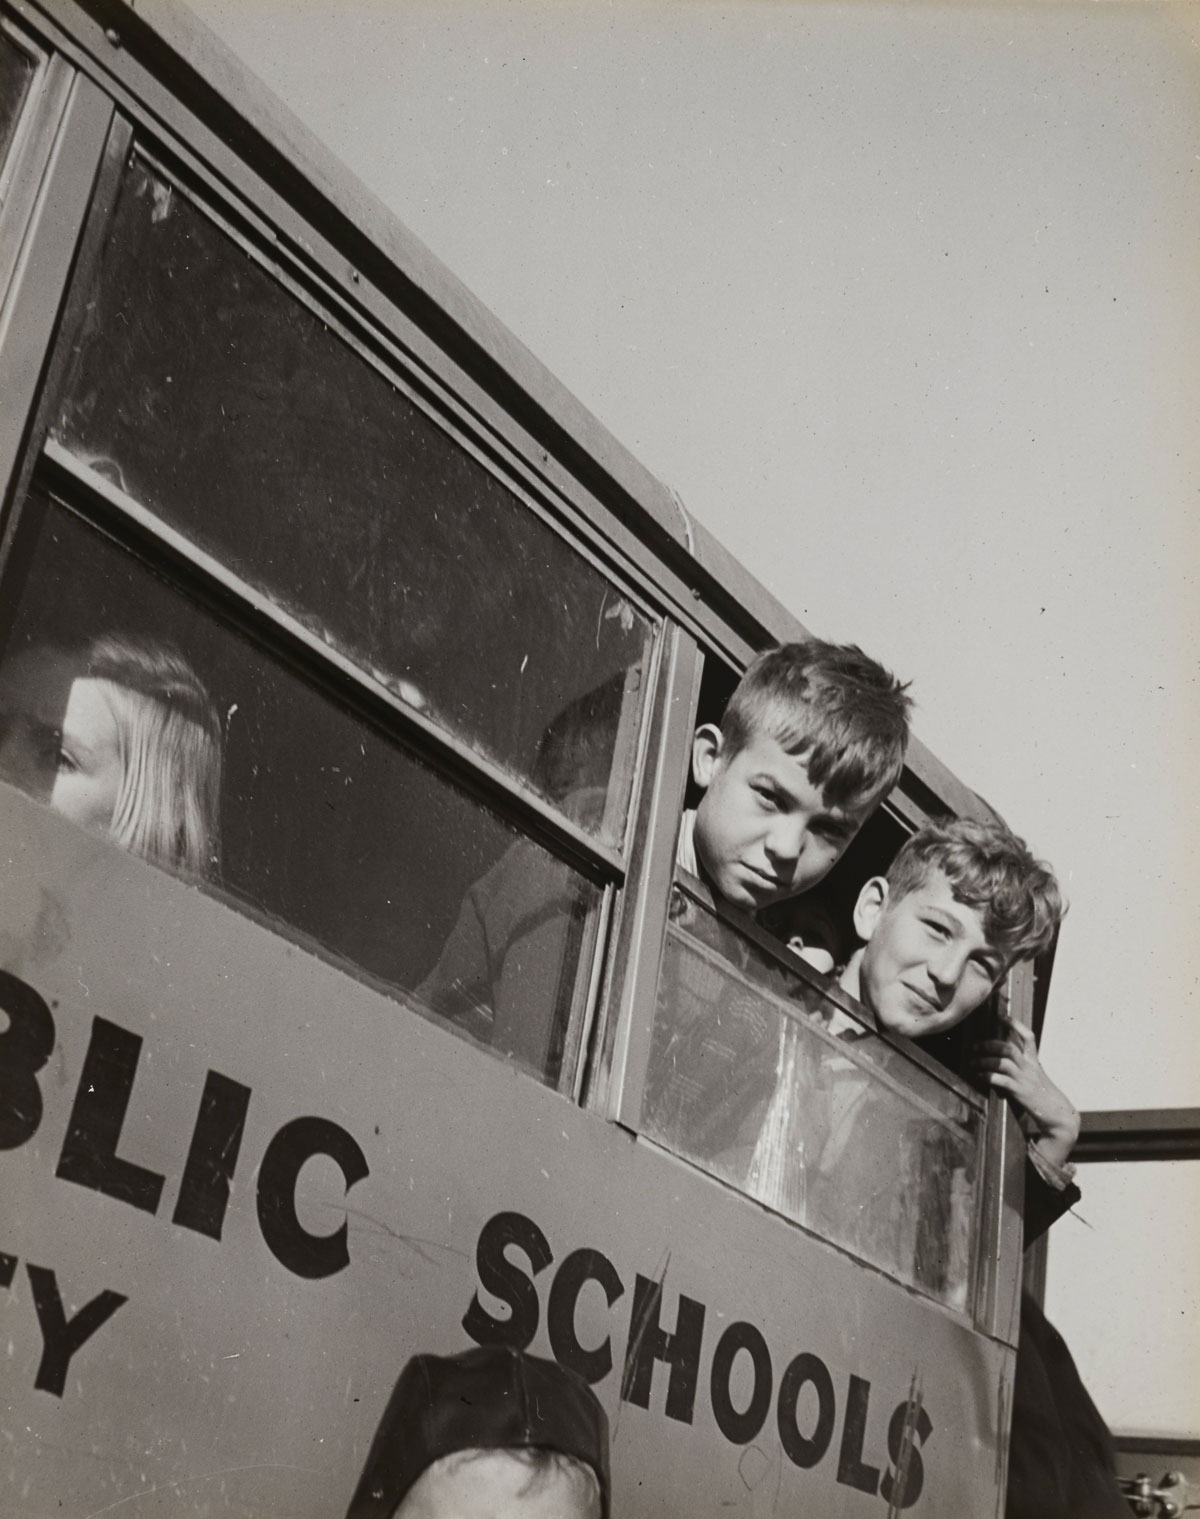 Walter Loeb on the school bus